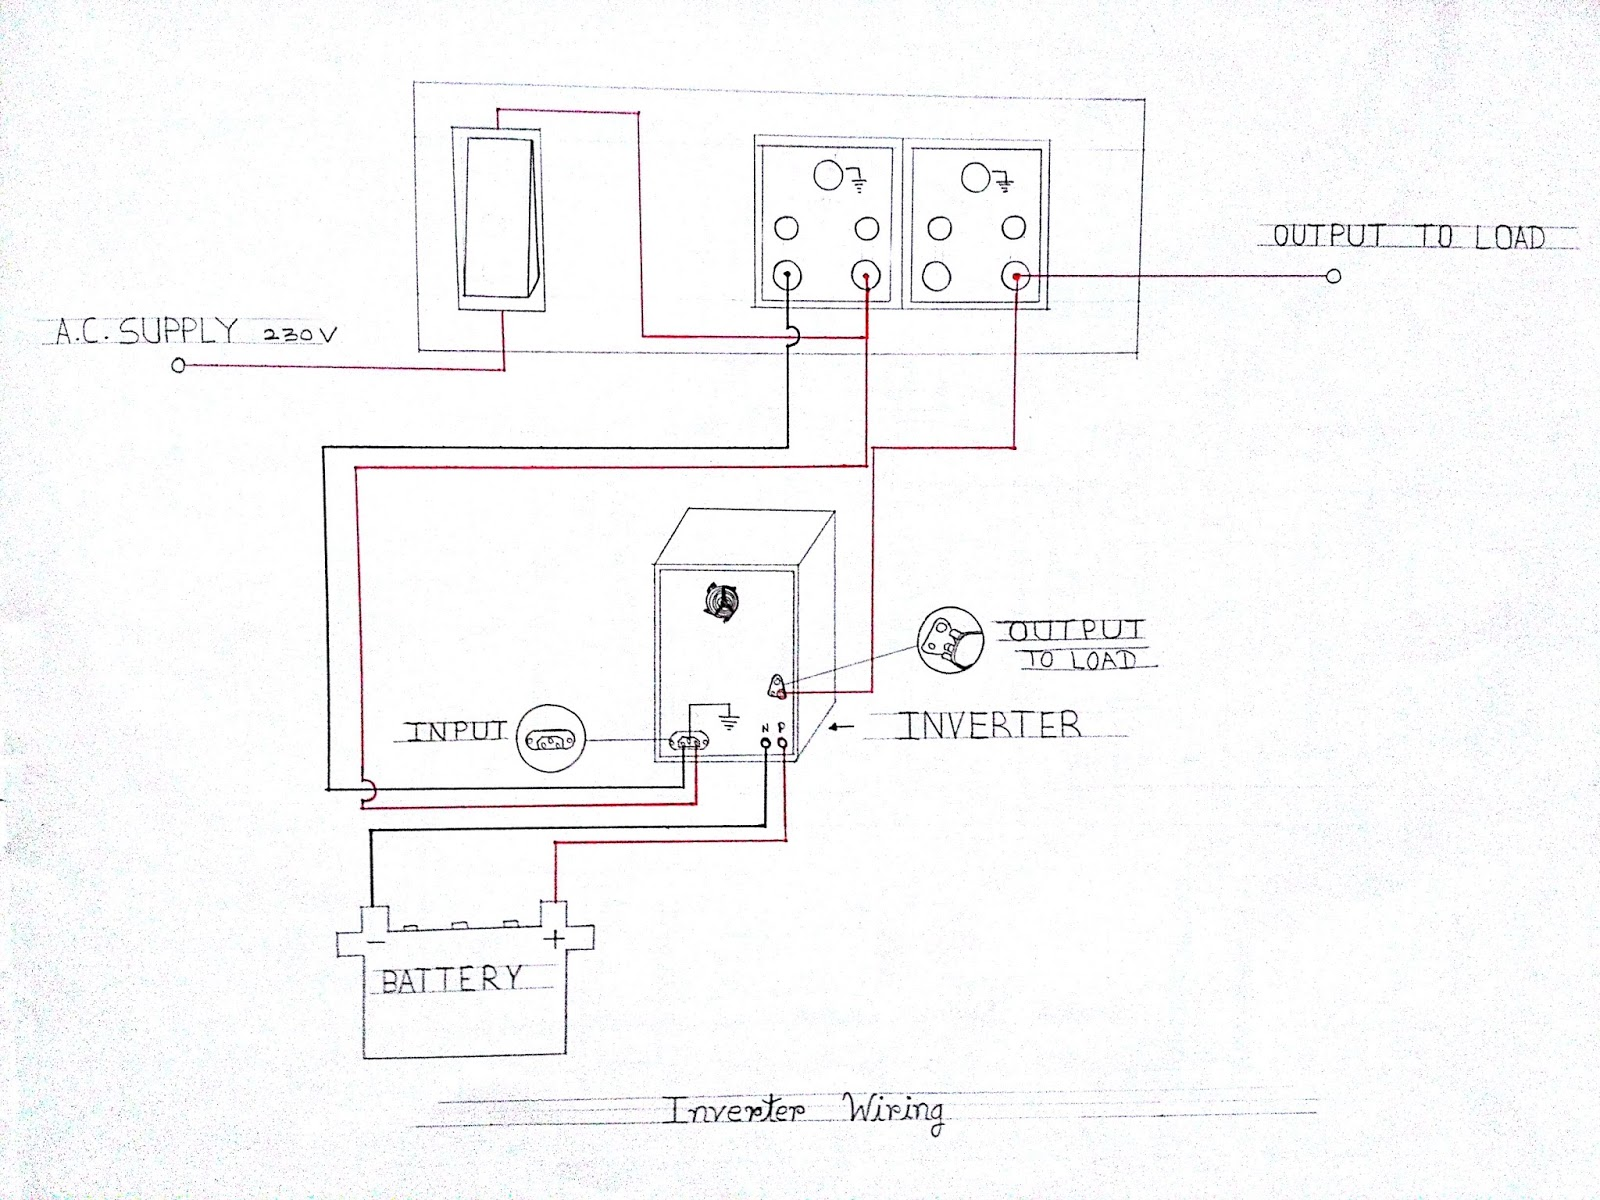 Xantrex 458 Inverter Wiring Diagram Wiring Diagram And